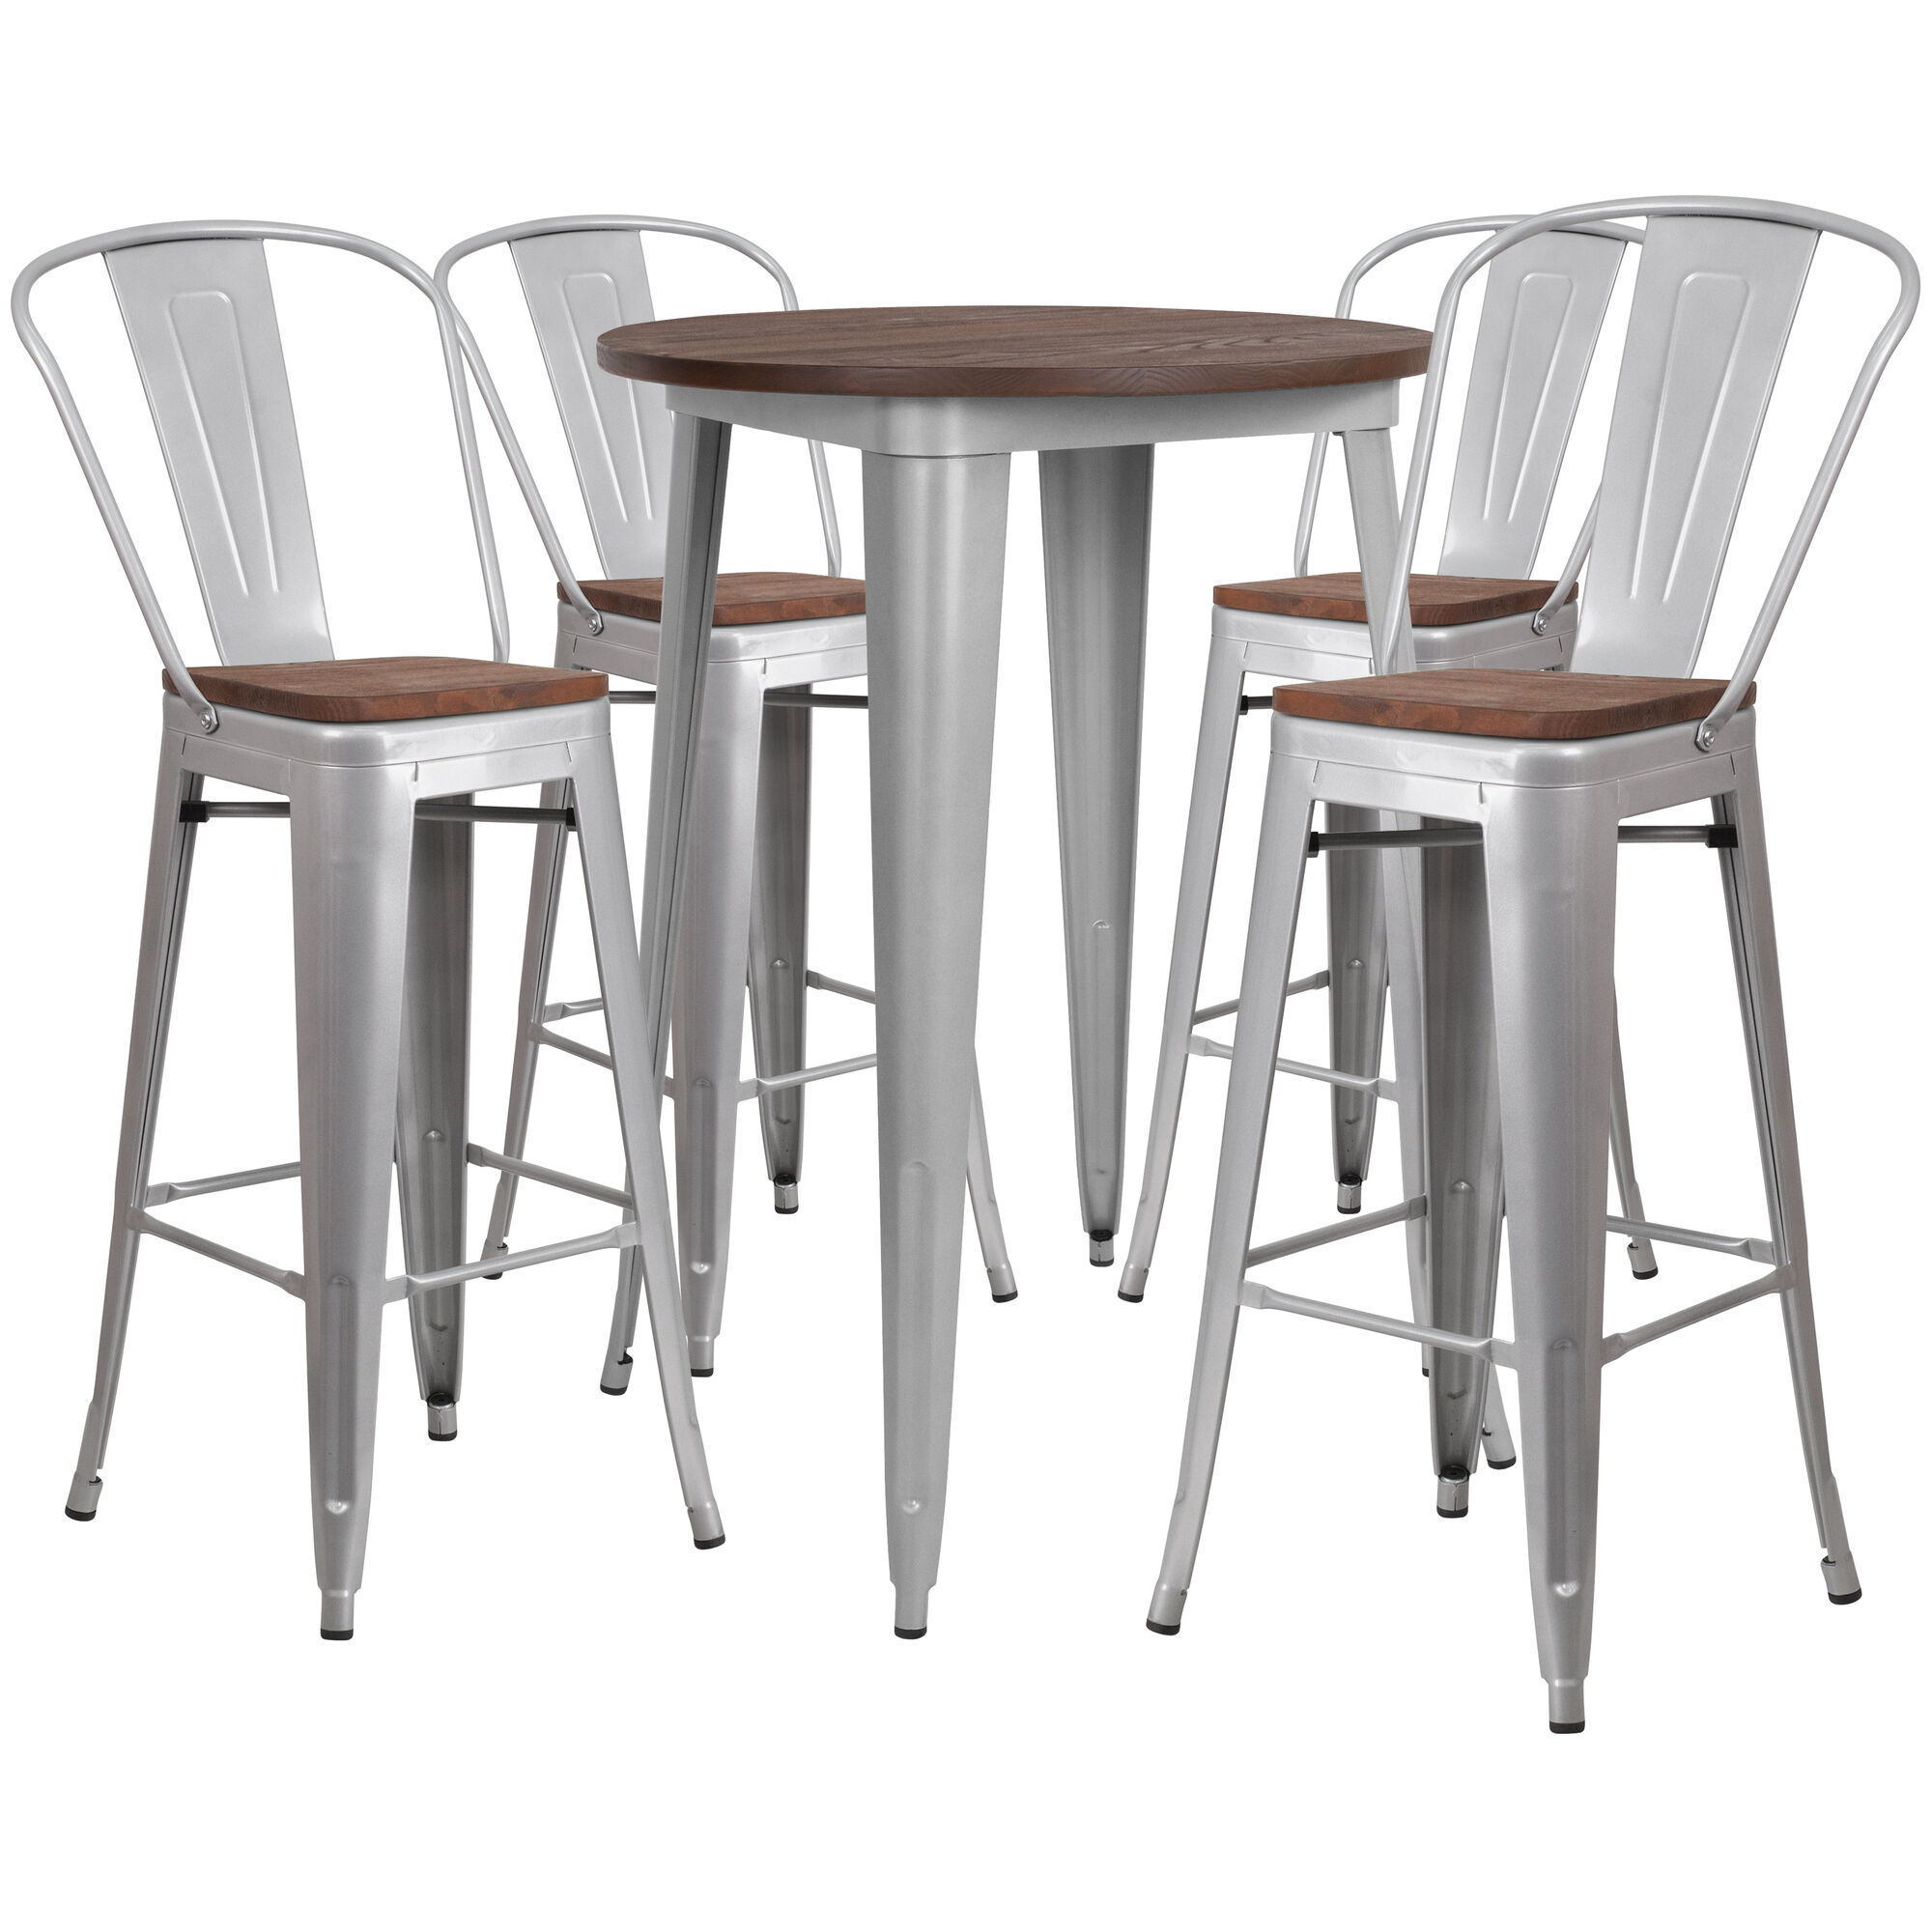 Remarkable 30 Round Silver Metal Bar Table Set With Wood Top And 4 Stools Machost Co Dining Chair Design Ideas Machostcouk